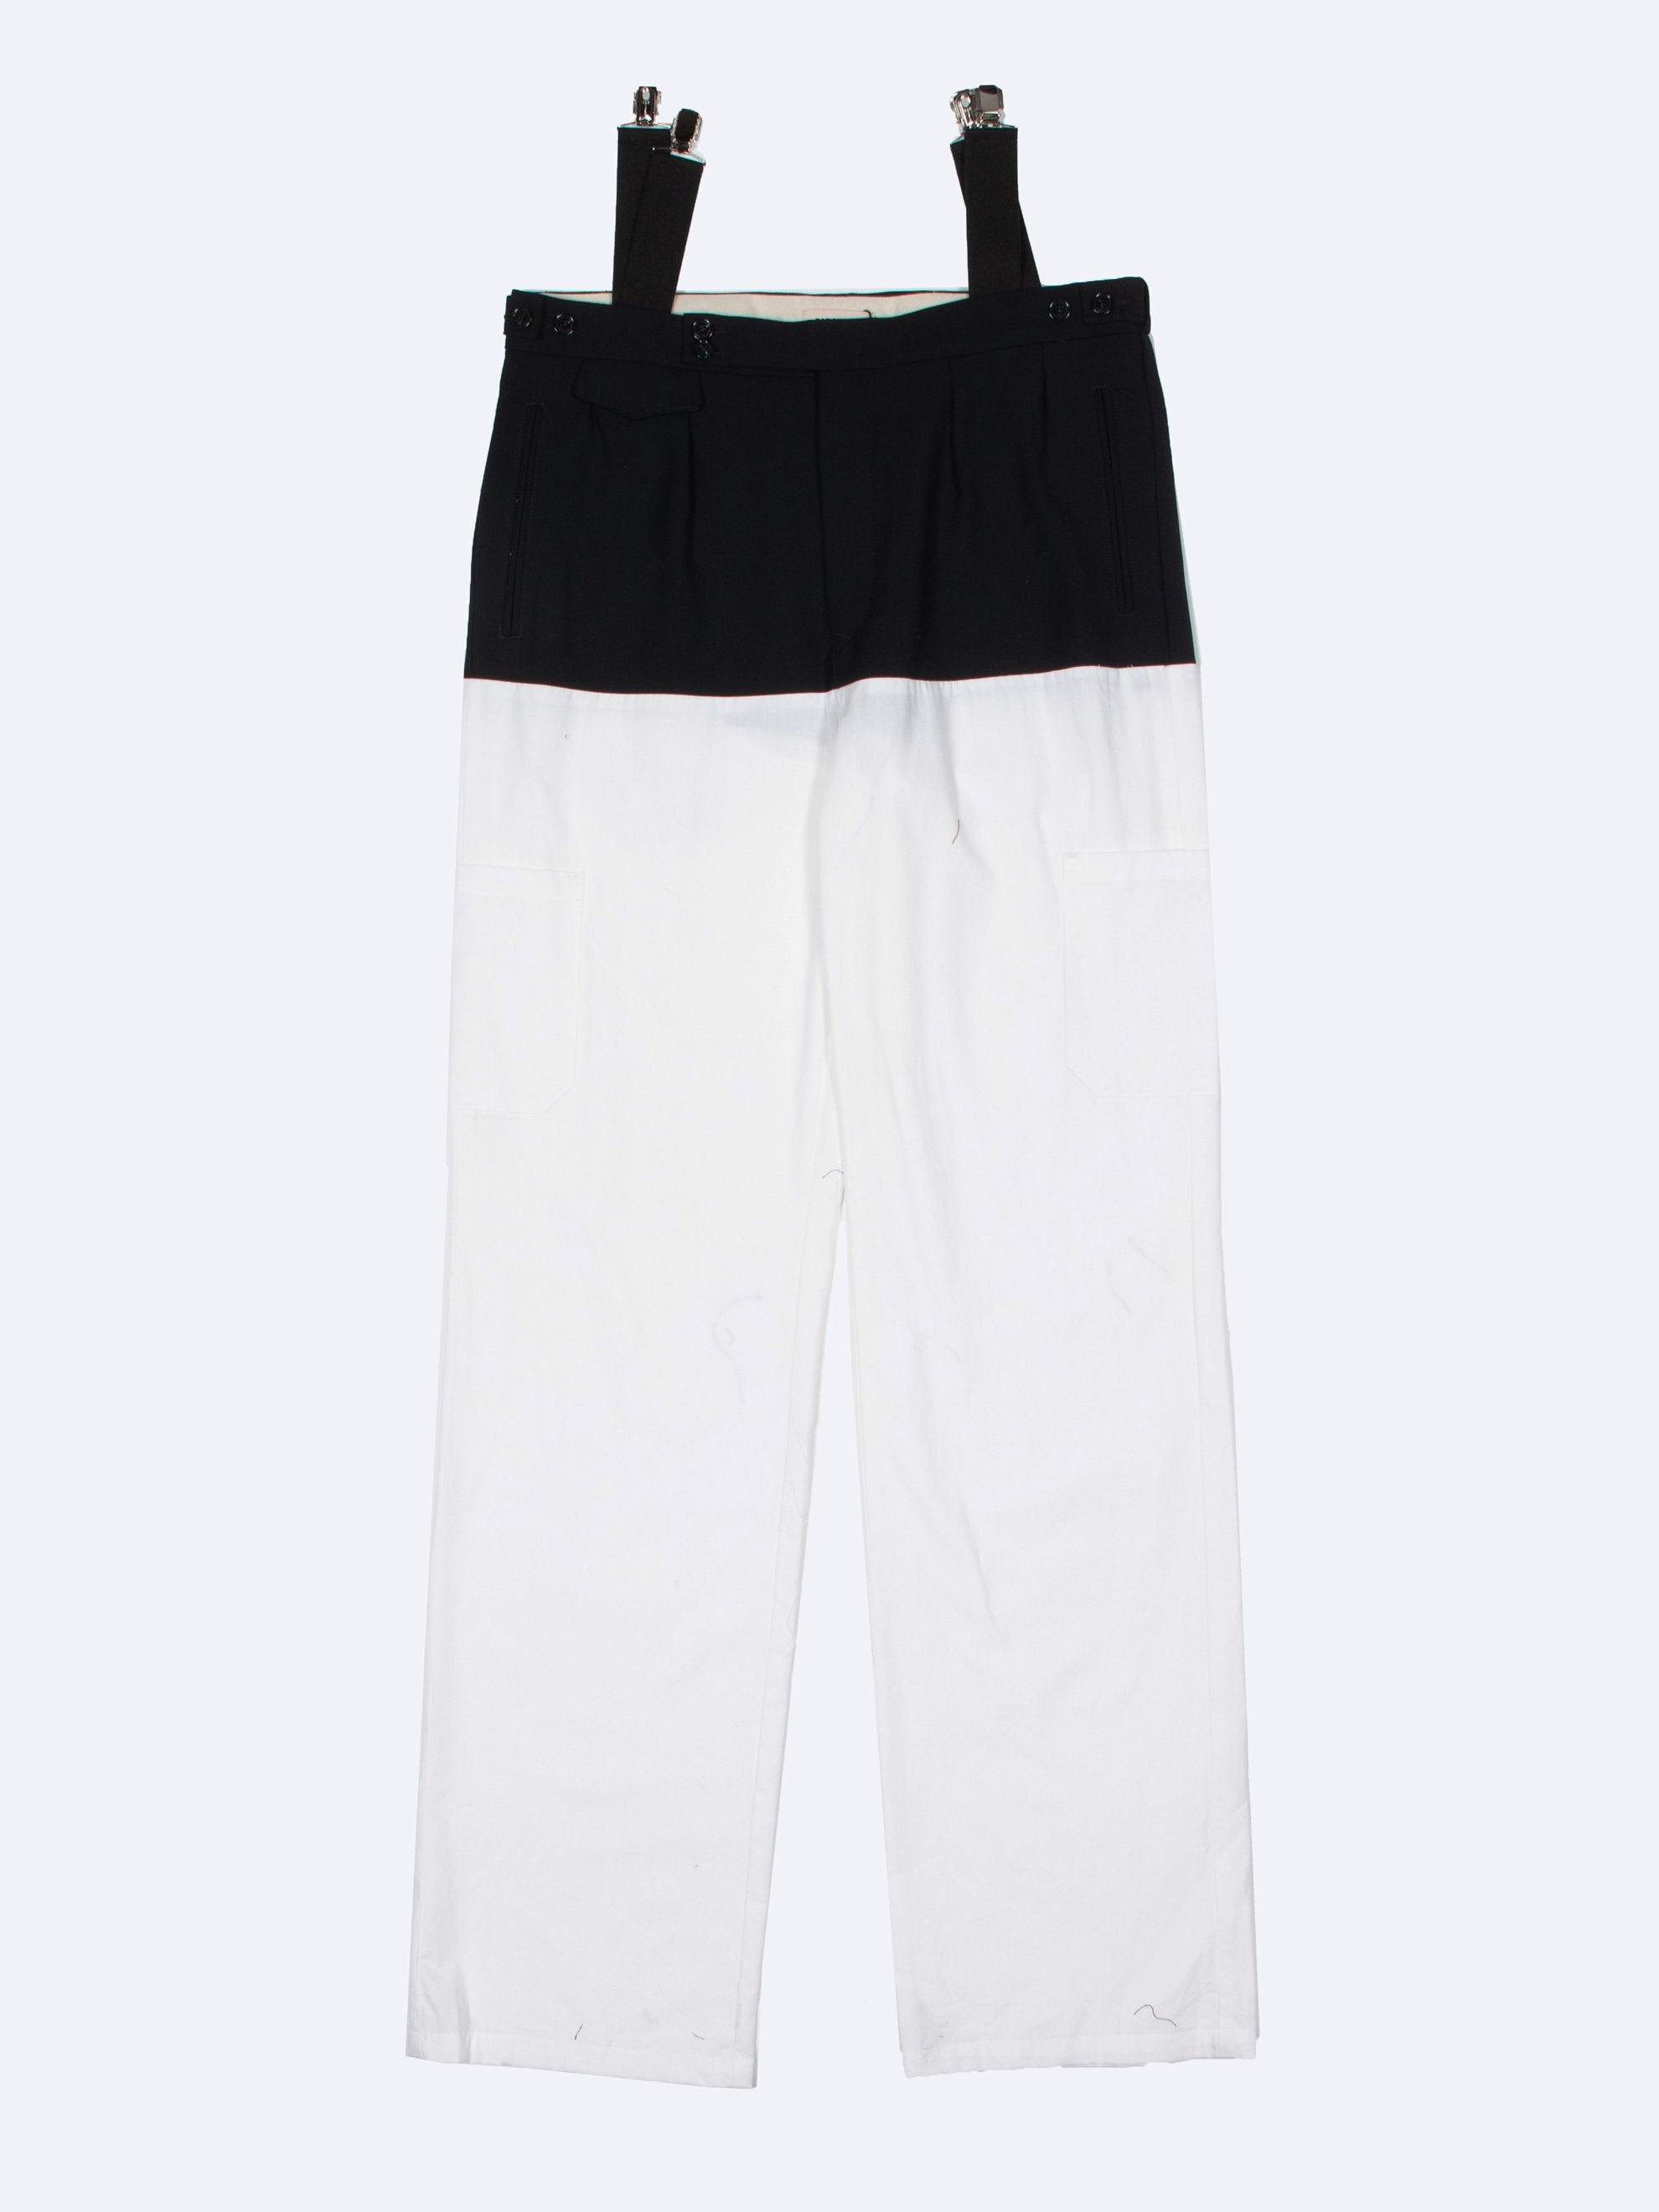 White / Navy Pants With Horizontal Cut Pockets & Suspenders 1